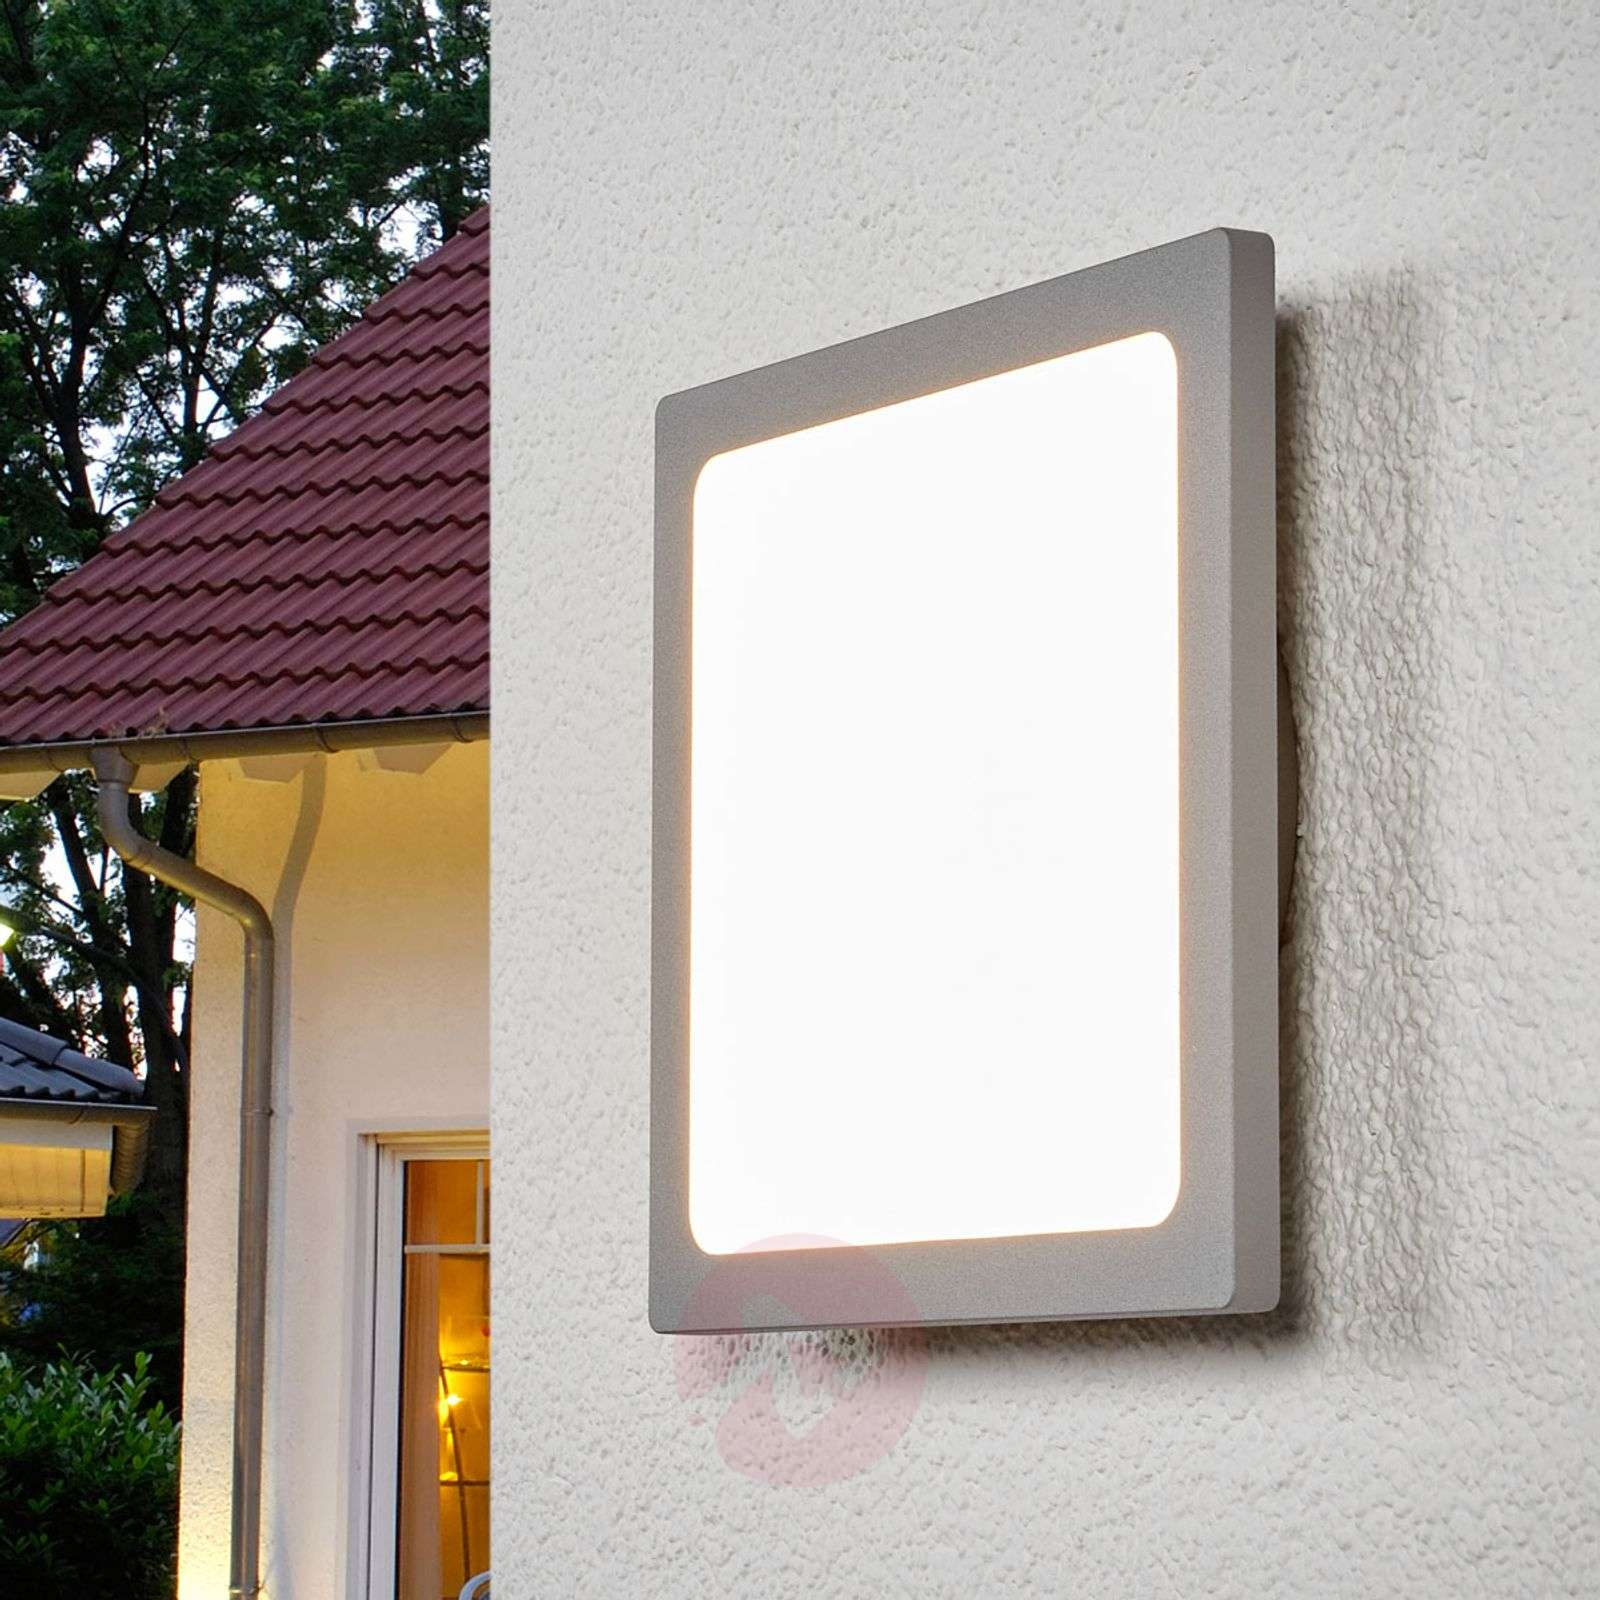 LED outdoor ceiling lamp Mabella, motion detector-9619109-03